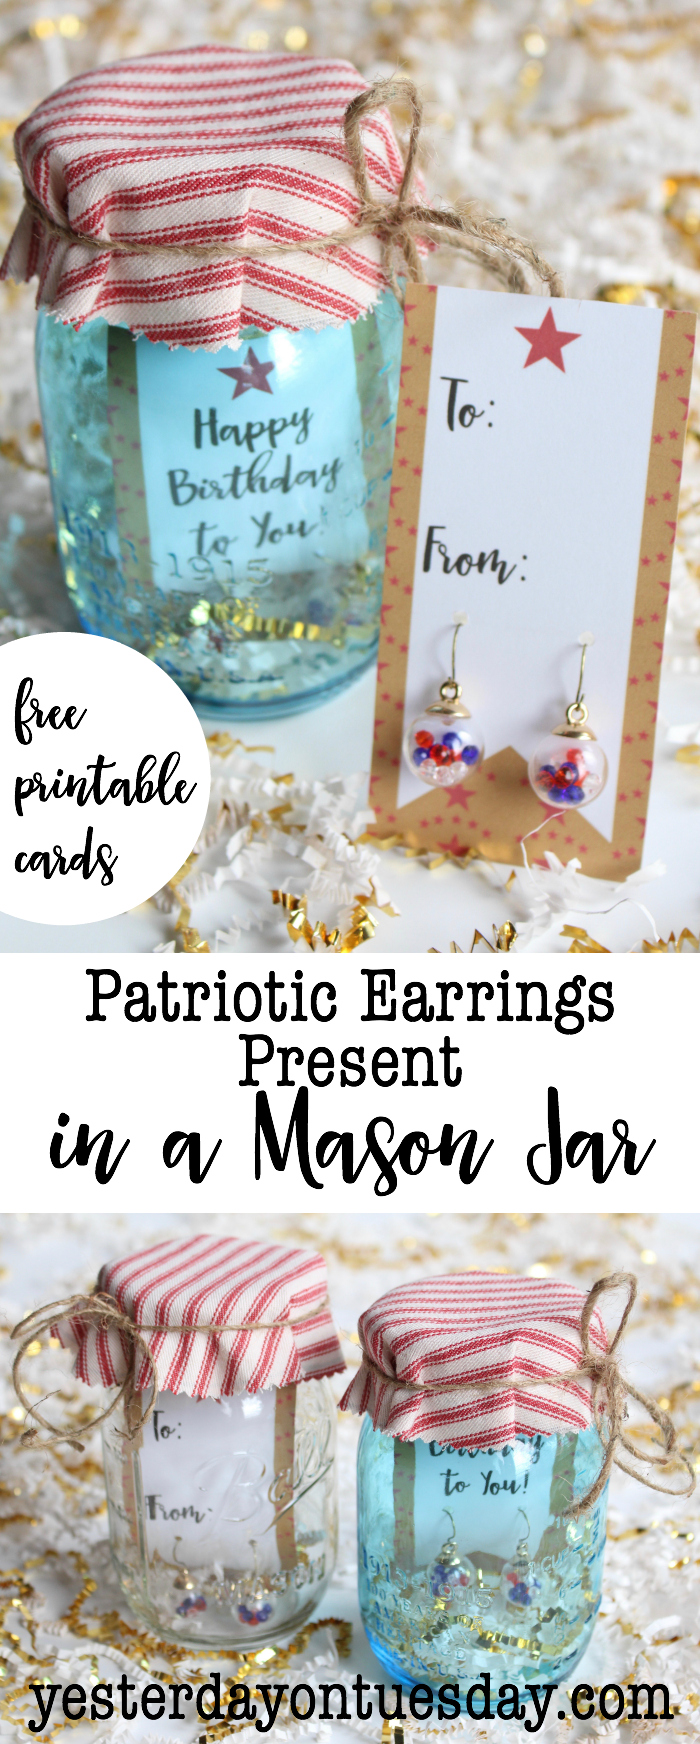 DIY Patriotic Earrings Present in a Mason Jar plus Printable Cards